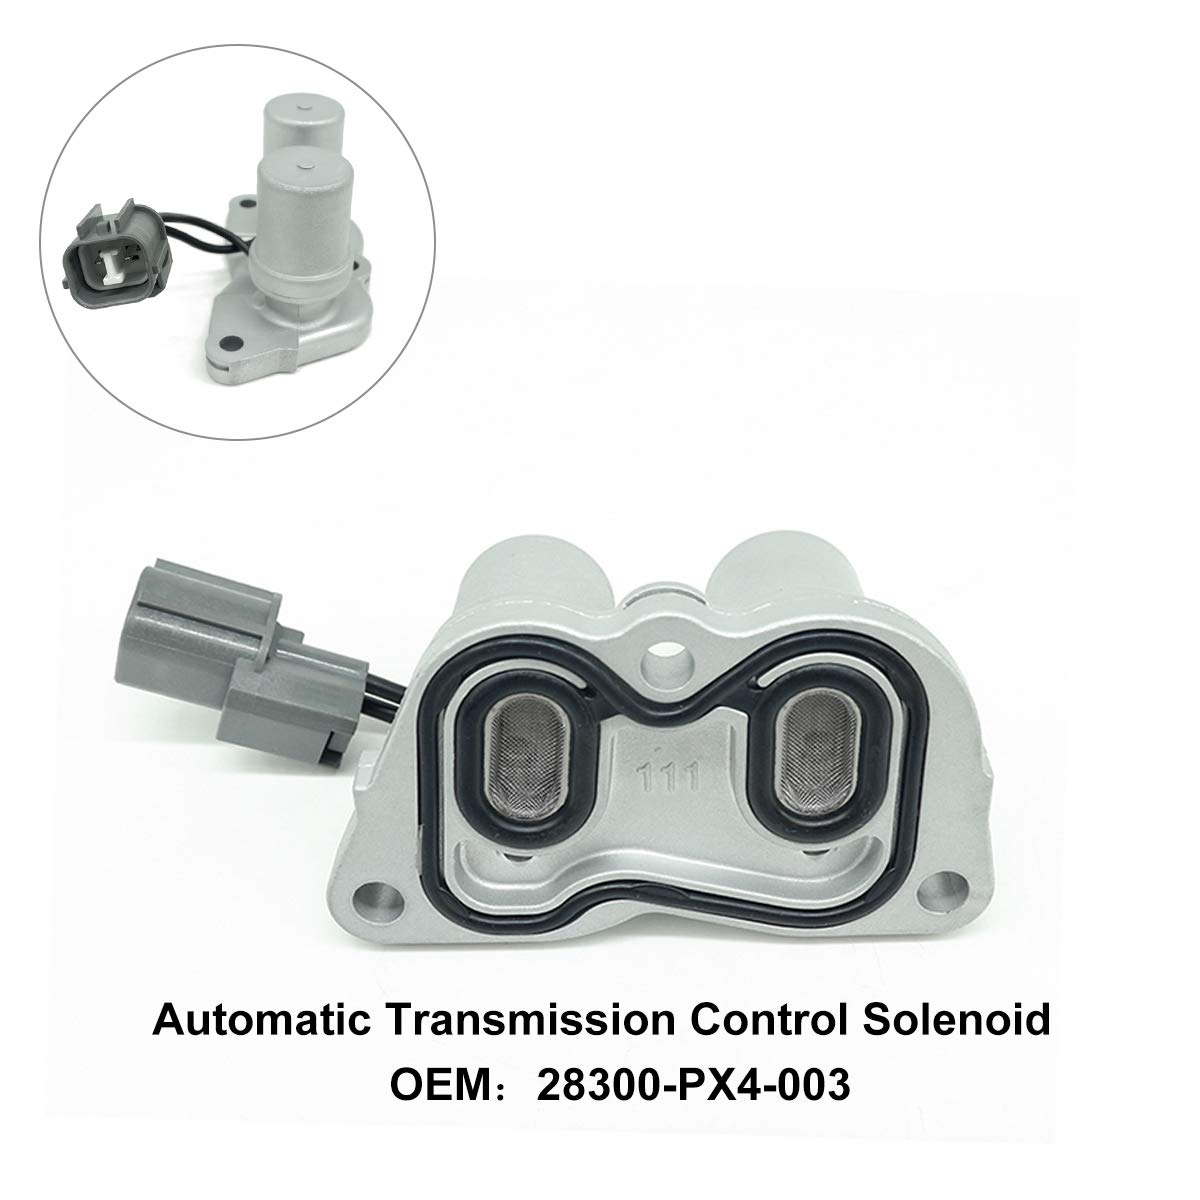 Transmission Control Shift Lock up Solenoid Replacement For 1998-2002 Honda Accord 4 Cylinder 1997-2001 Honda Prelude 1997-1999 Acura CL 1995-1998 Honda Odyssey Automatic Control Solenoid transmission